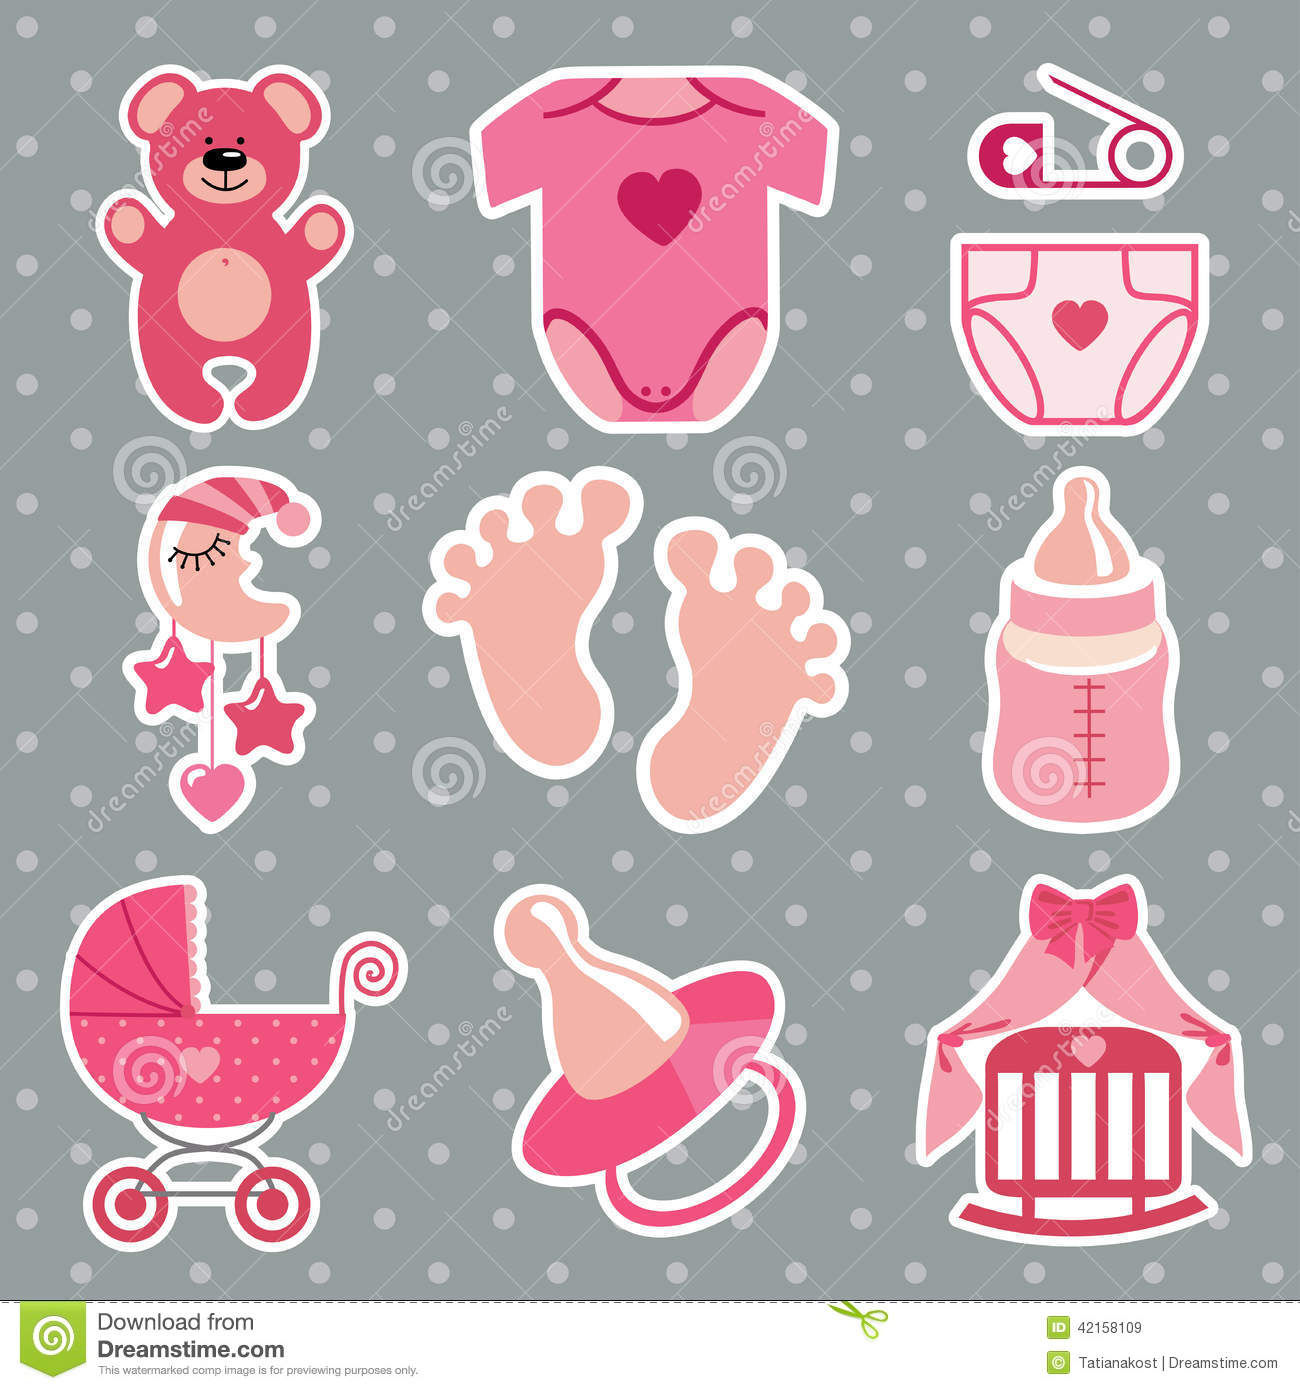 cute icons for newborn baby girl polka dot background. Black Bedroom Furniture Sets. Home Design Ideas